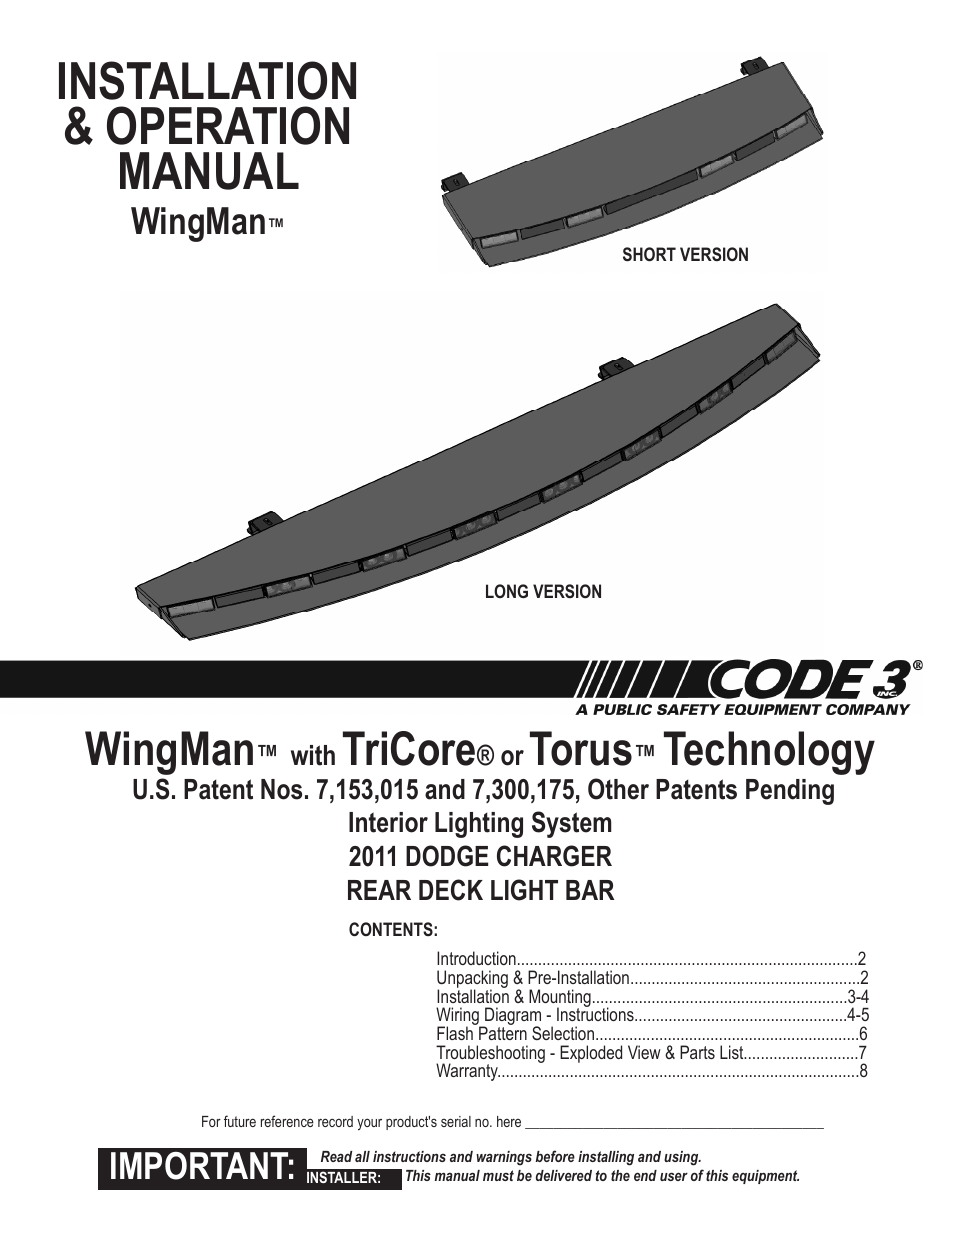 Code 3 Wingman with TriCore/Torus for Charger User Manual